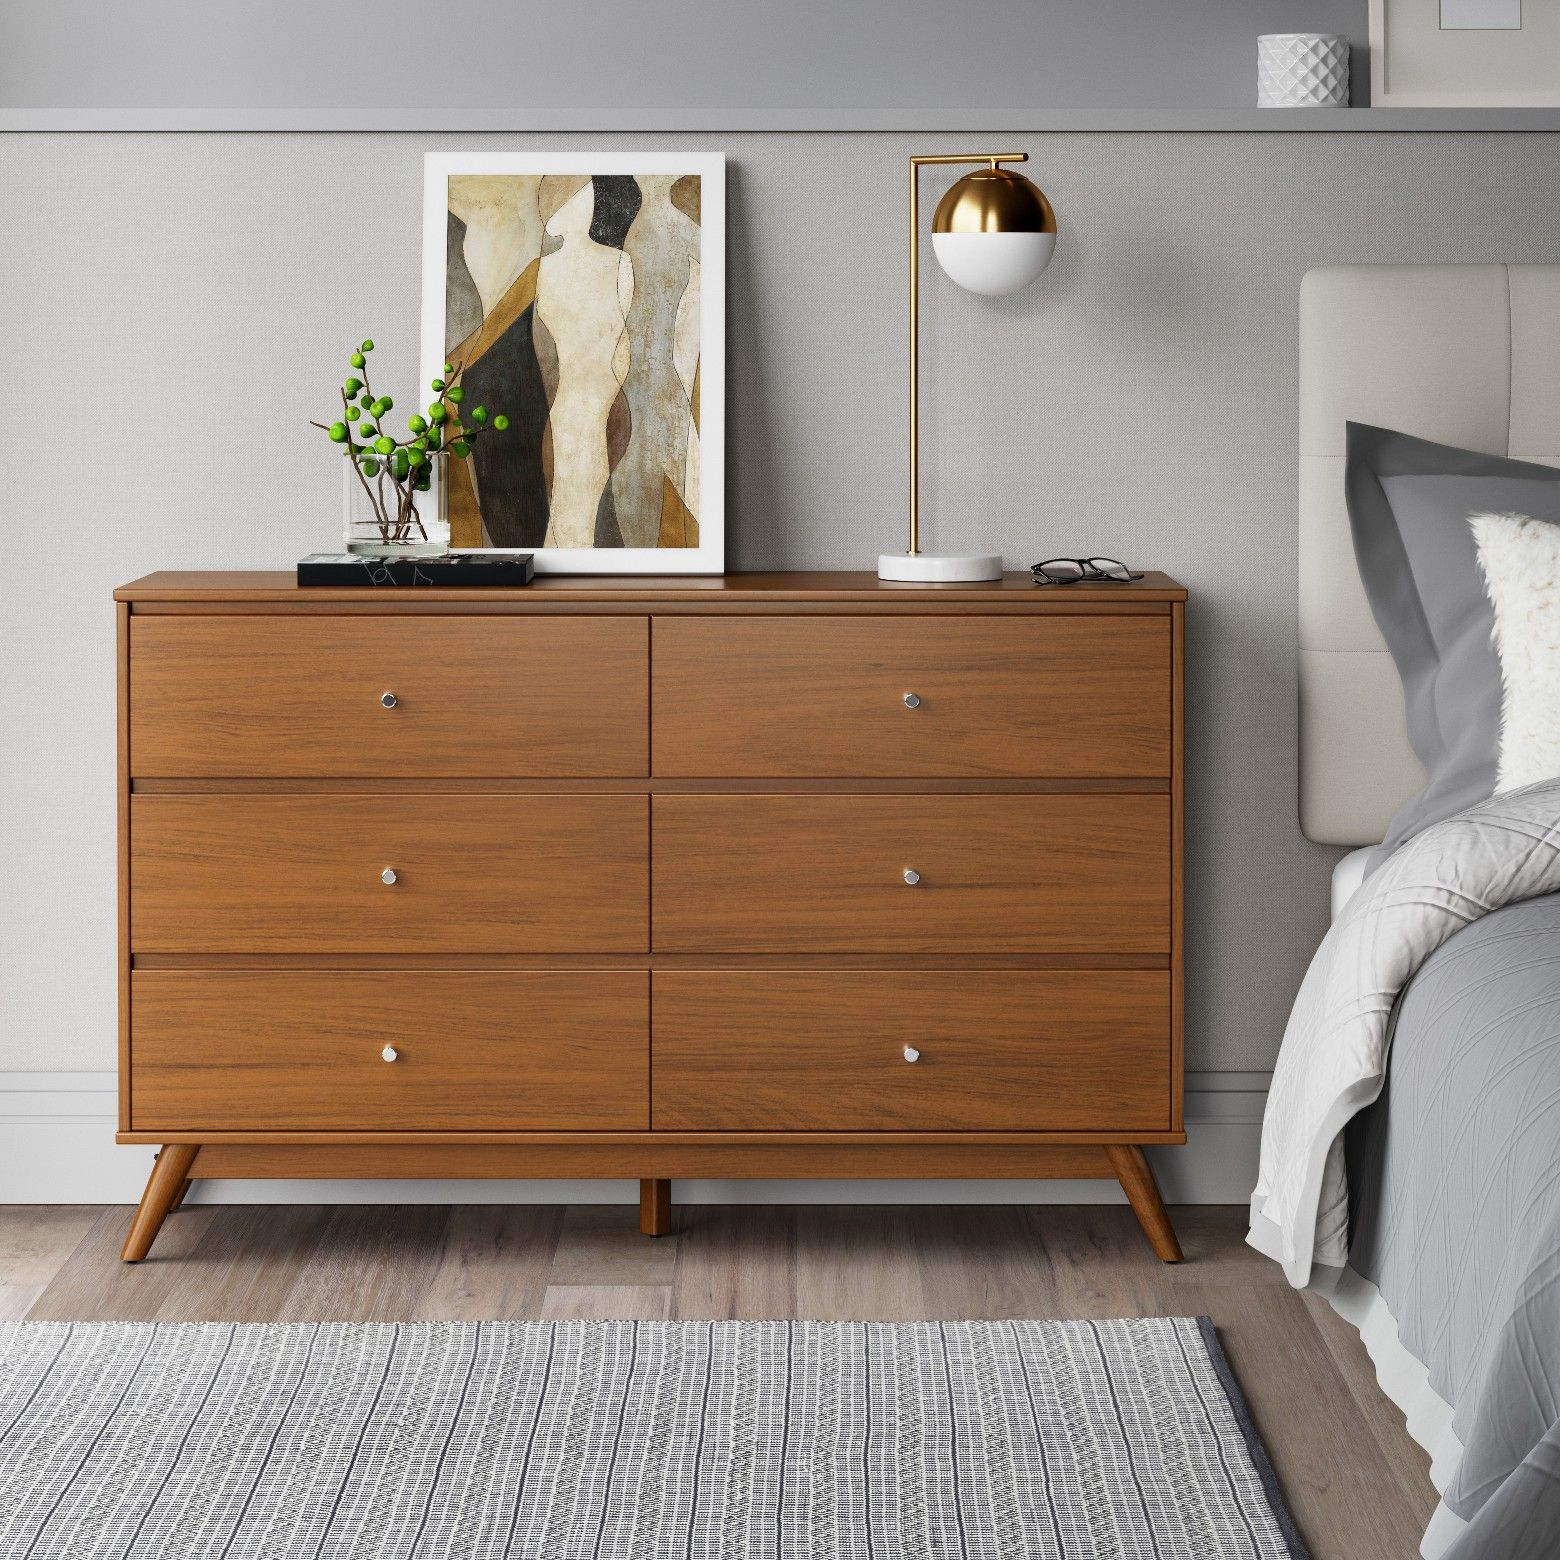 Amherst Horizontal Dresser Project 62 In 2020 Storage Furniture Bedroom Home Six Drawer Dresser